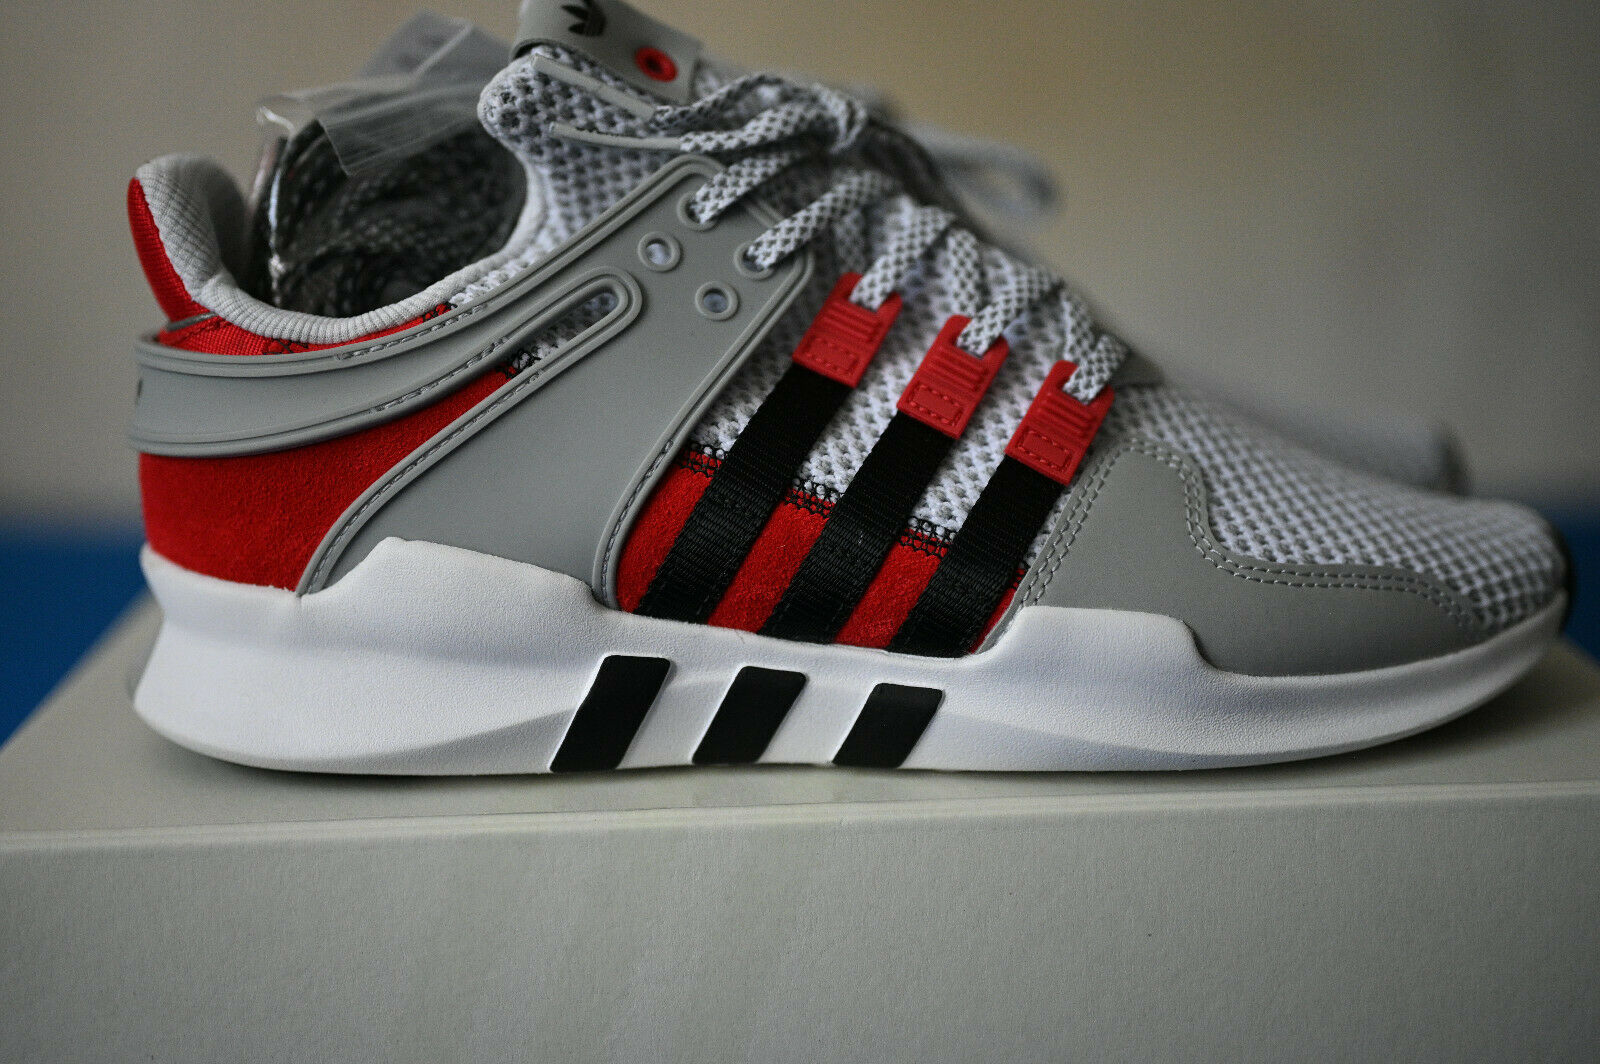 Adidas EQT Support ADV x Overkill - Coat of Arms